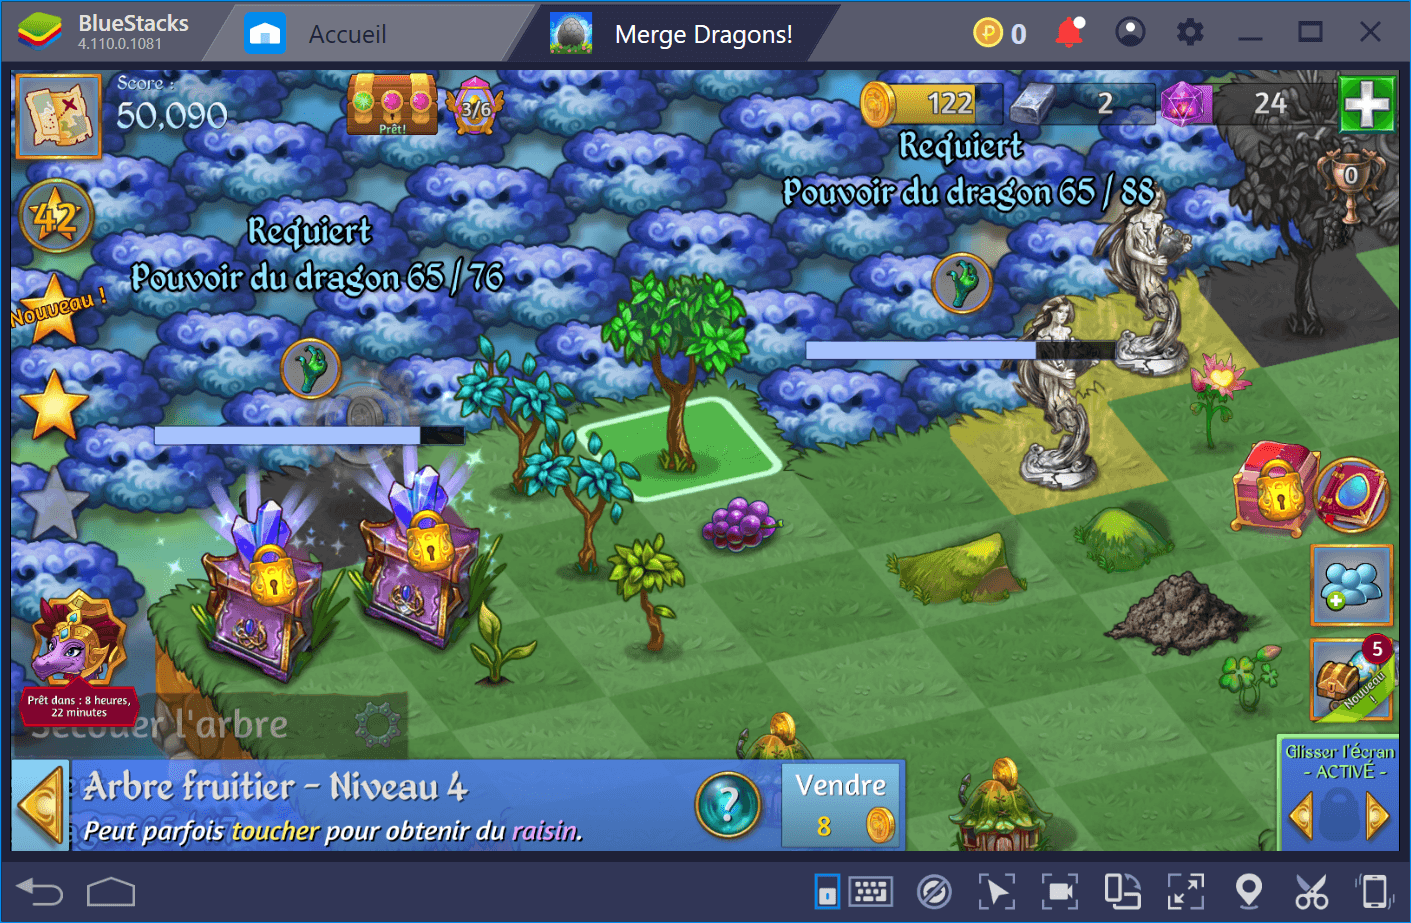 https://www.bluestacks.com/fr/apps/puzzle/merge-dragons-on-pc.html?utm_campaign=blog-md-com.gramgames.mergedragons-richguide-fr